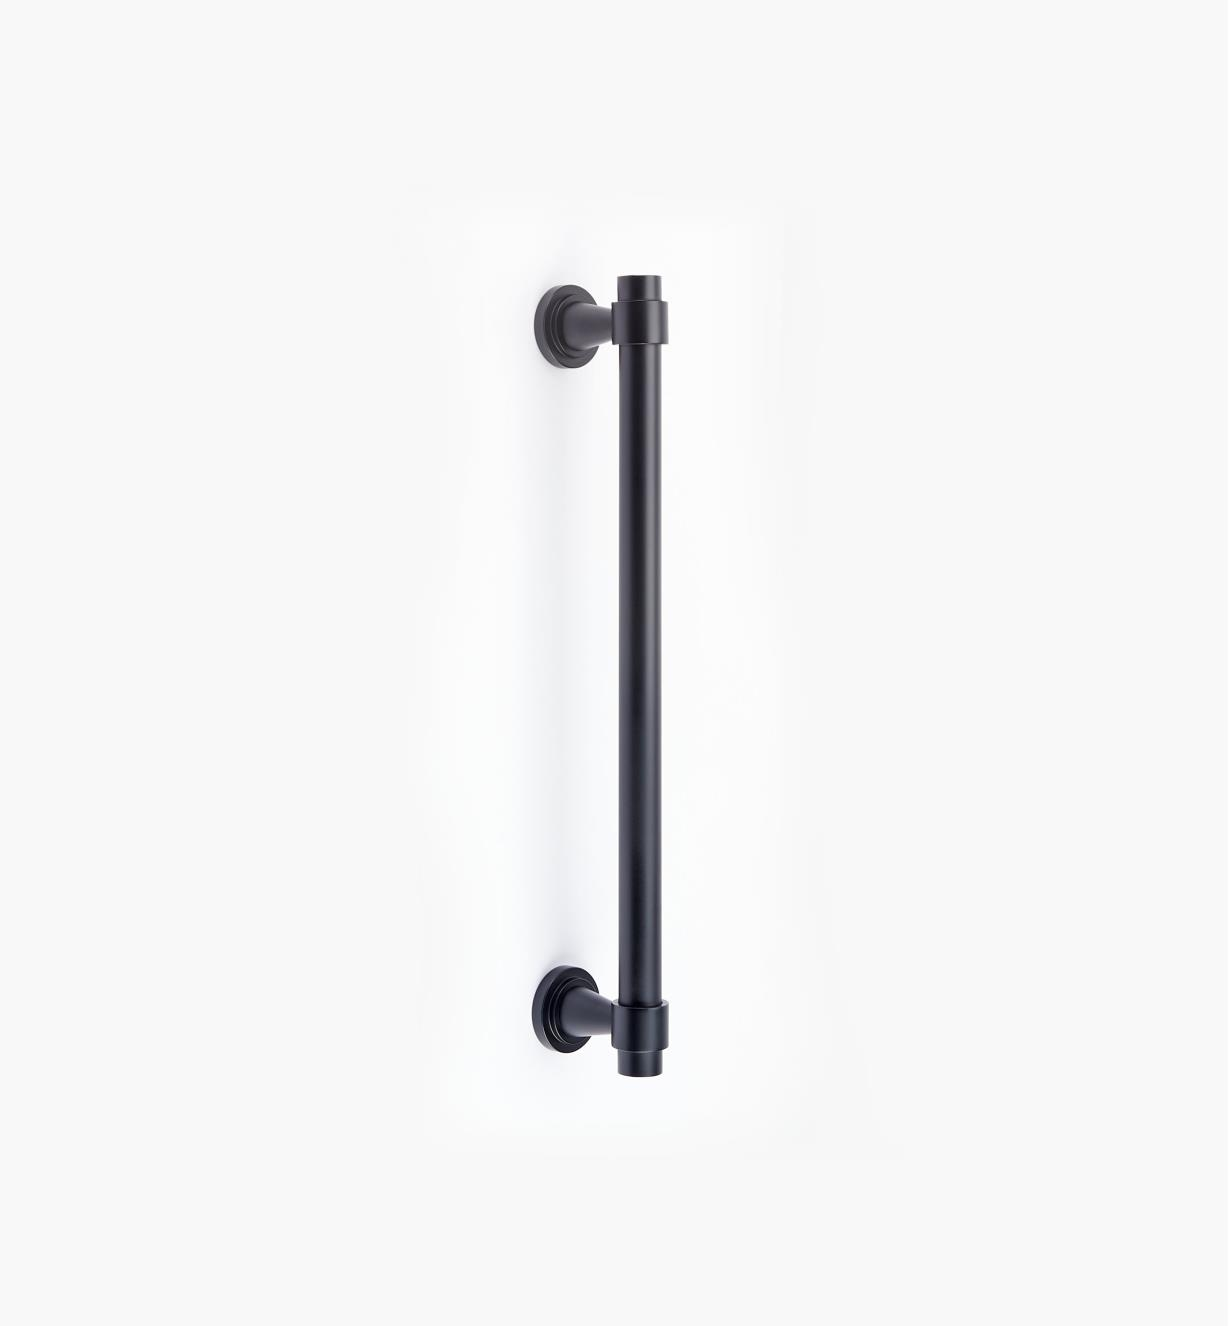 "00W0718 - Concerto Appliance Handles - 12"" (305mm) Oil-Rubbed Bronze Handle"